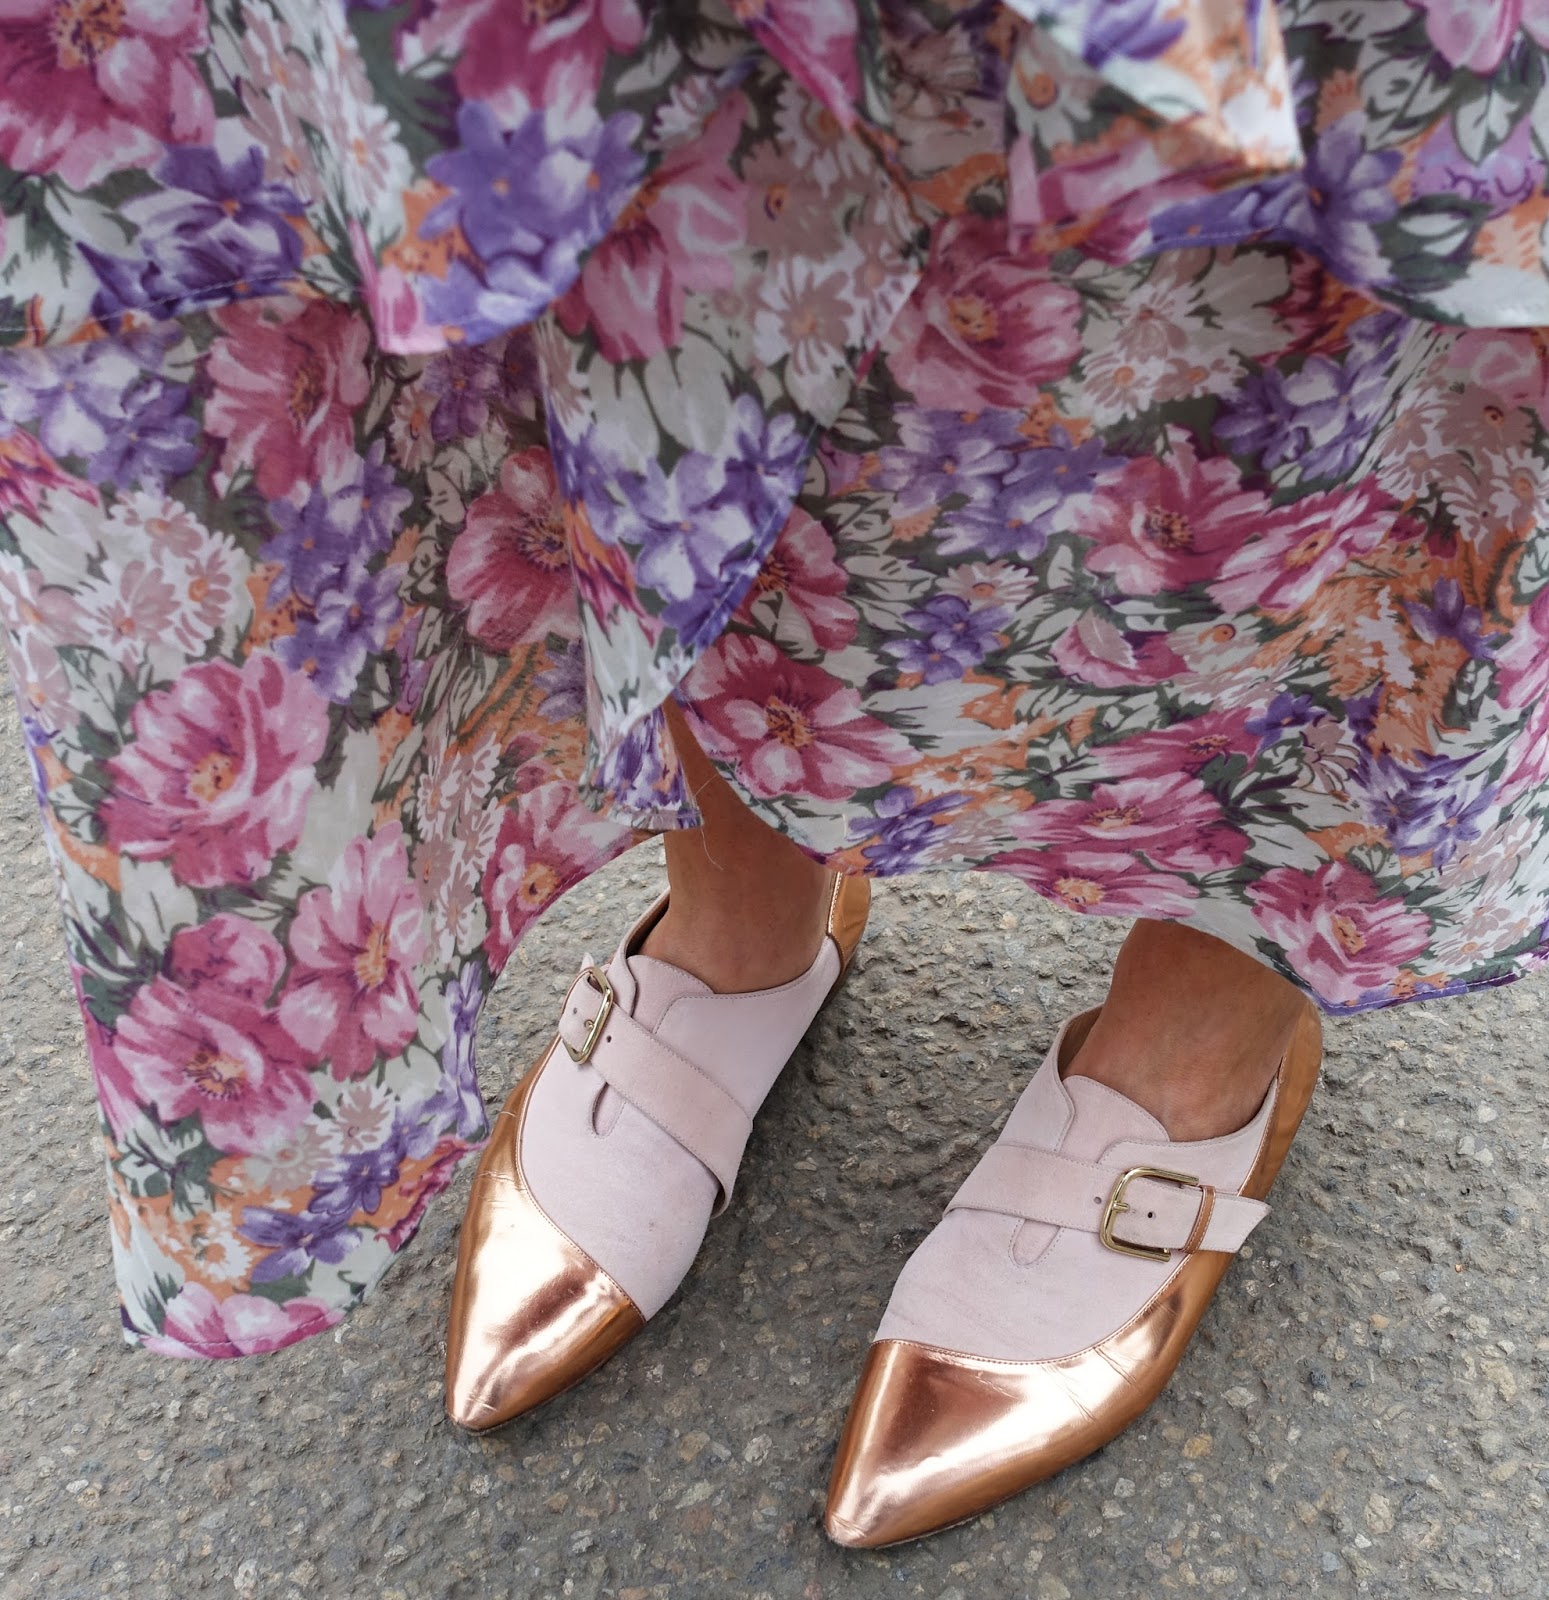 Fashionista dazzles in rose gold shoes, Chelsea Flower Show 2017